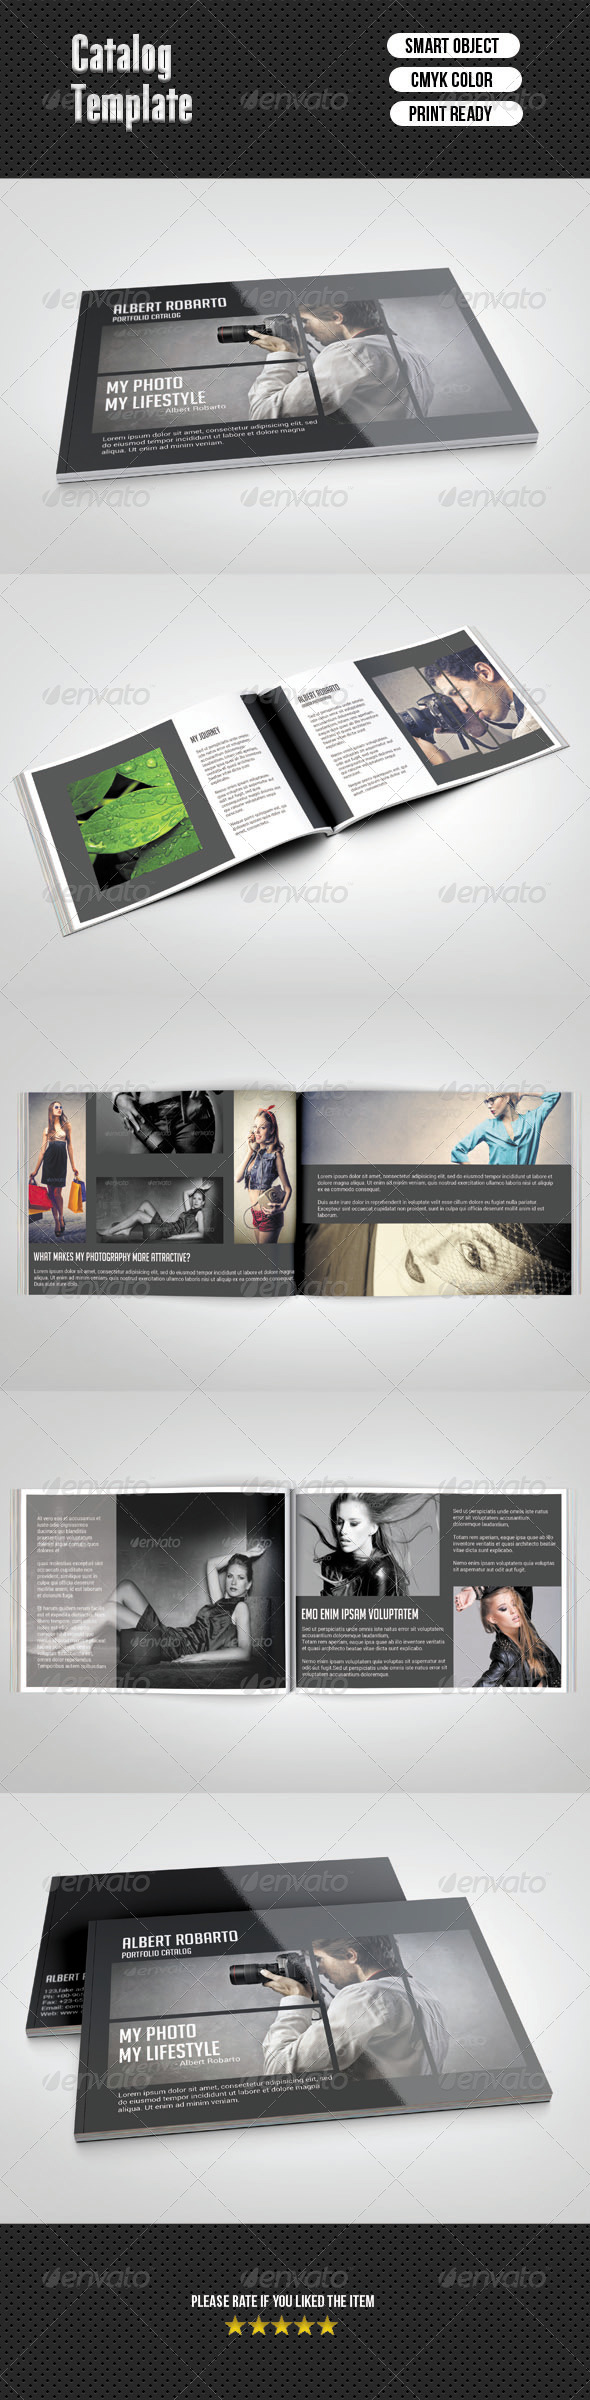 GraphicRiver Portfolio Catalog 6848147